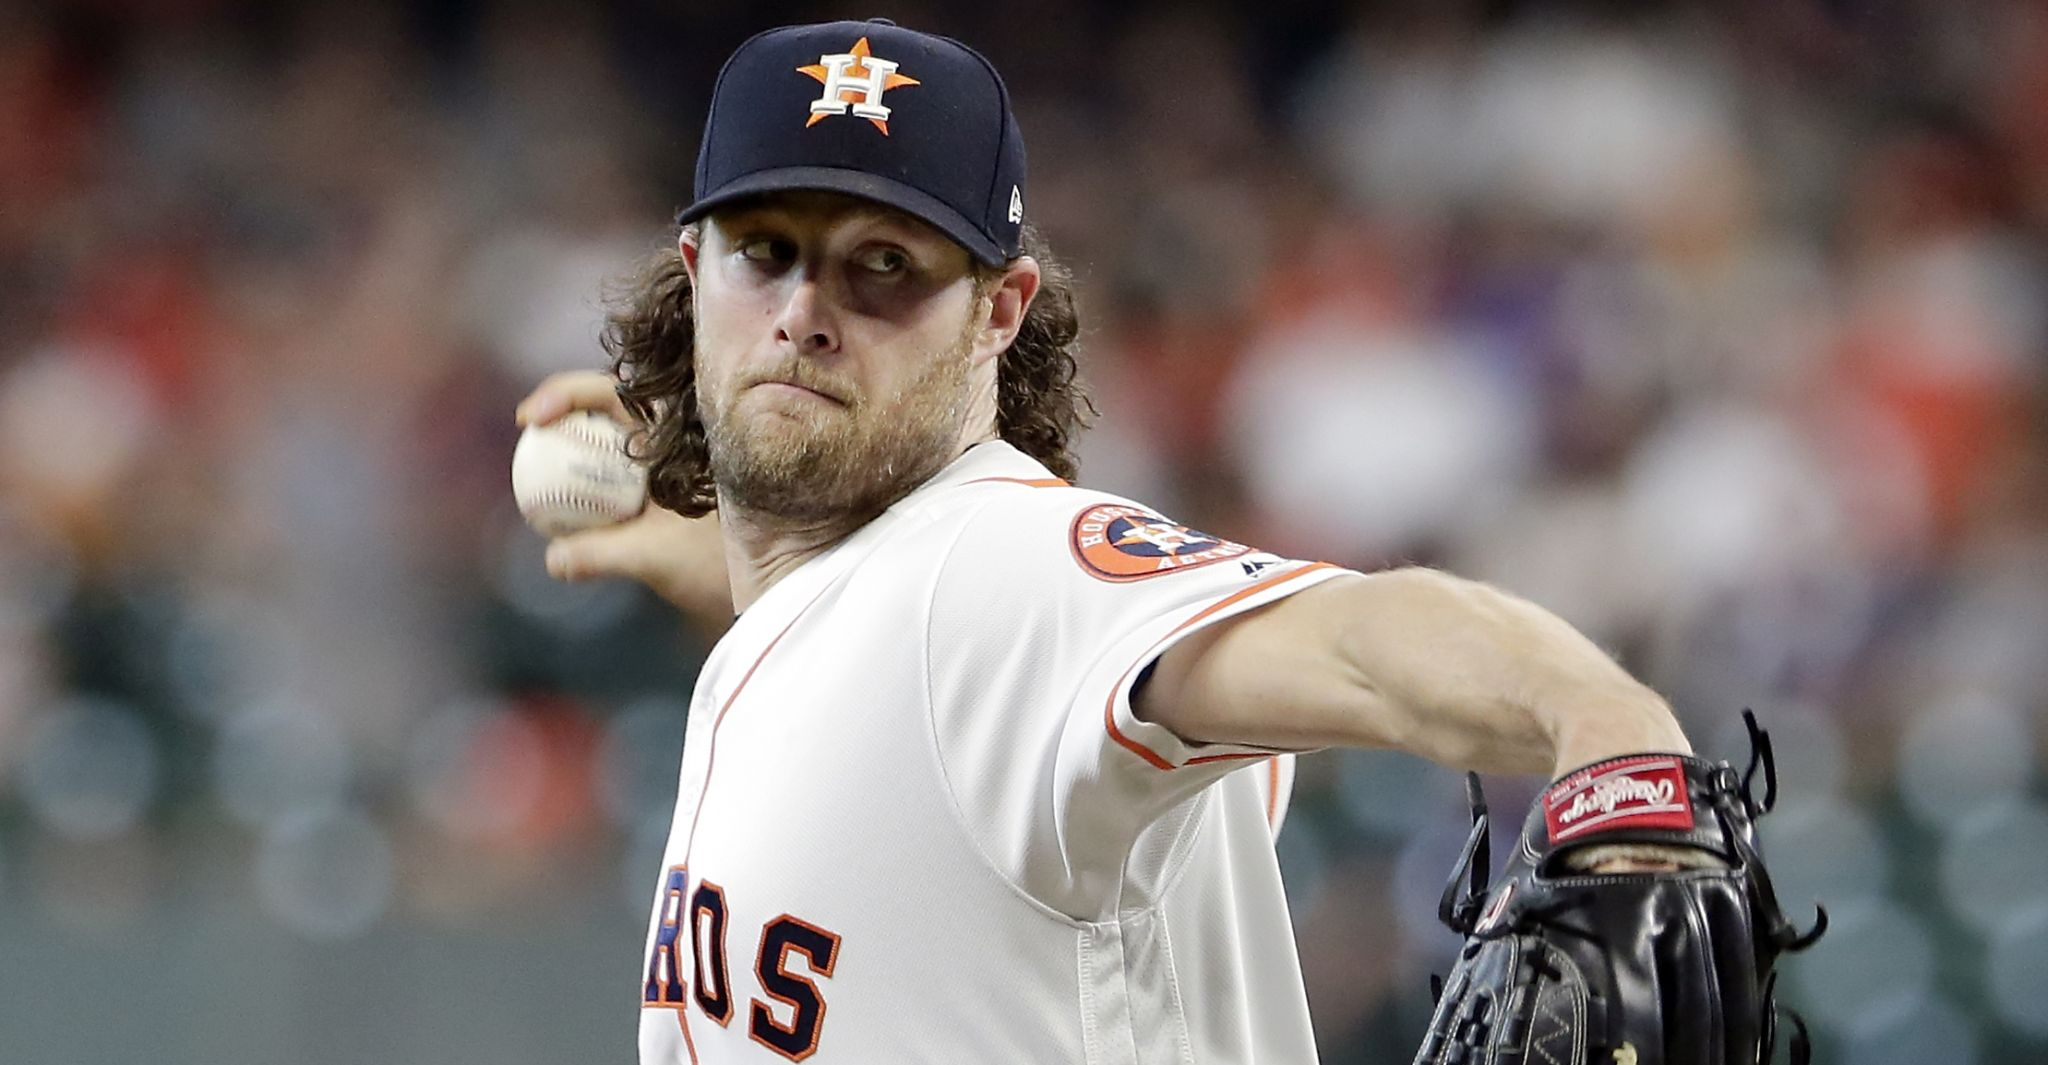 Astros hopeful Gerrit Cole won't miss another turn in rotation